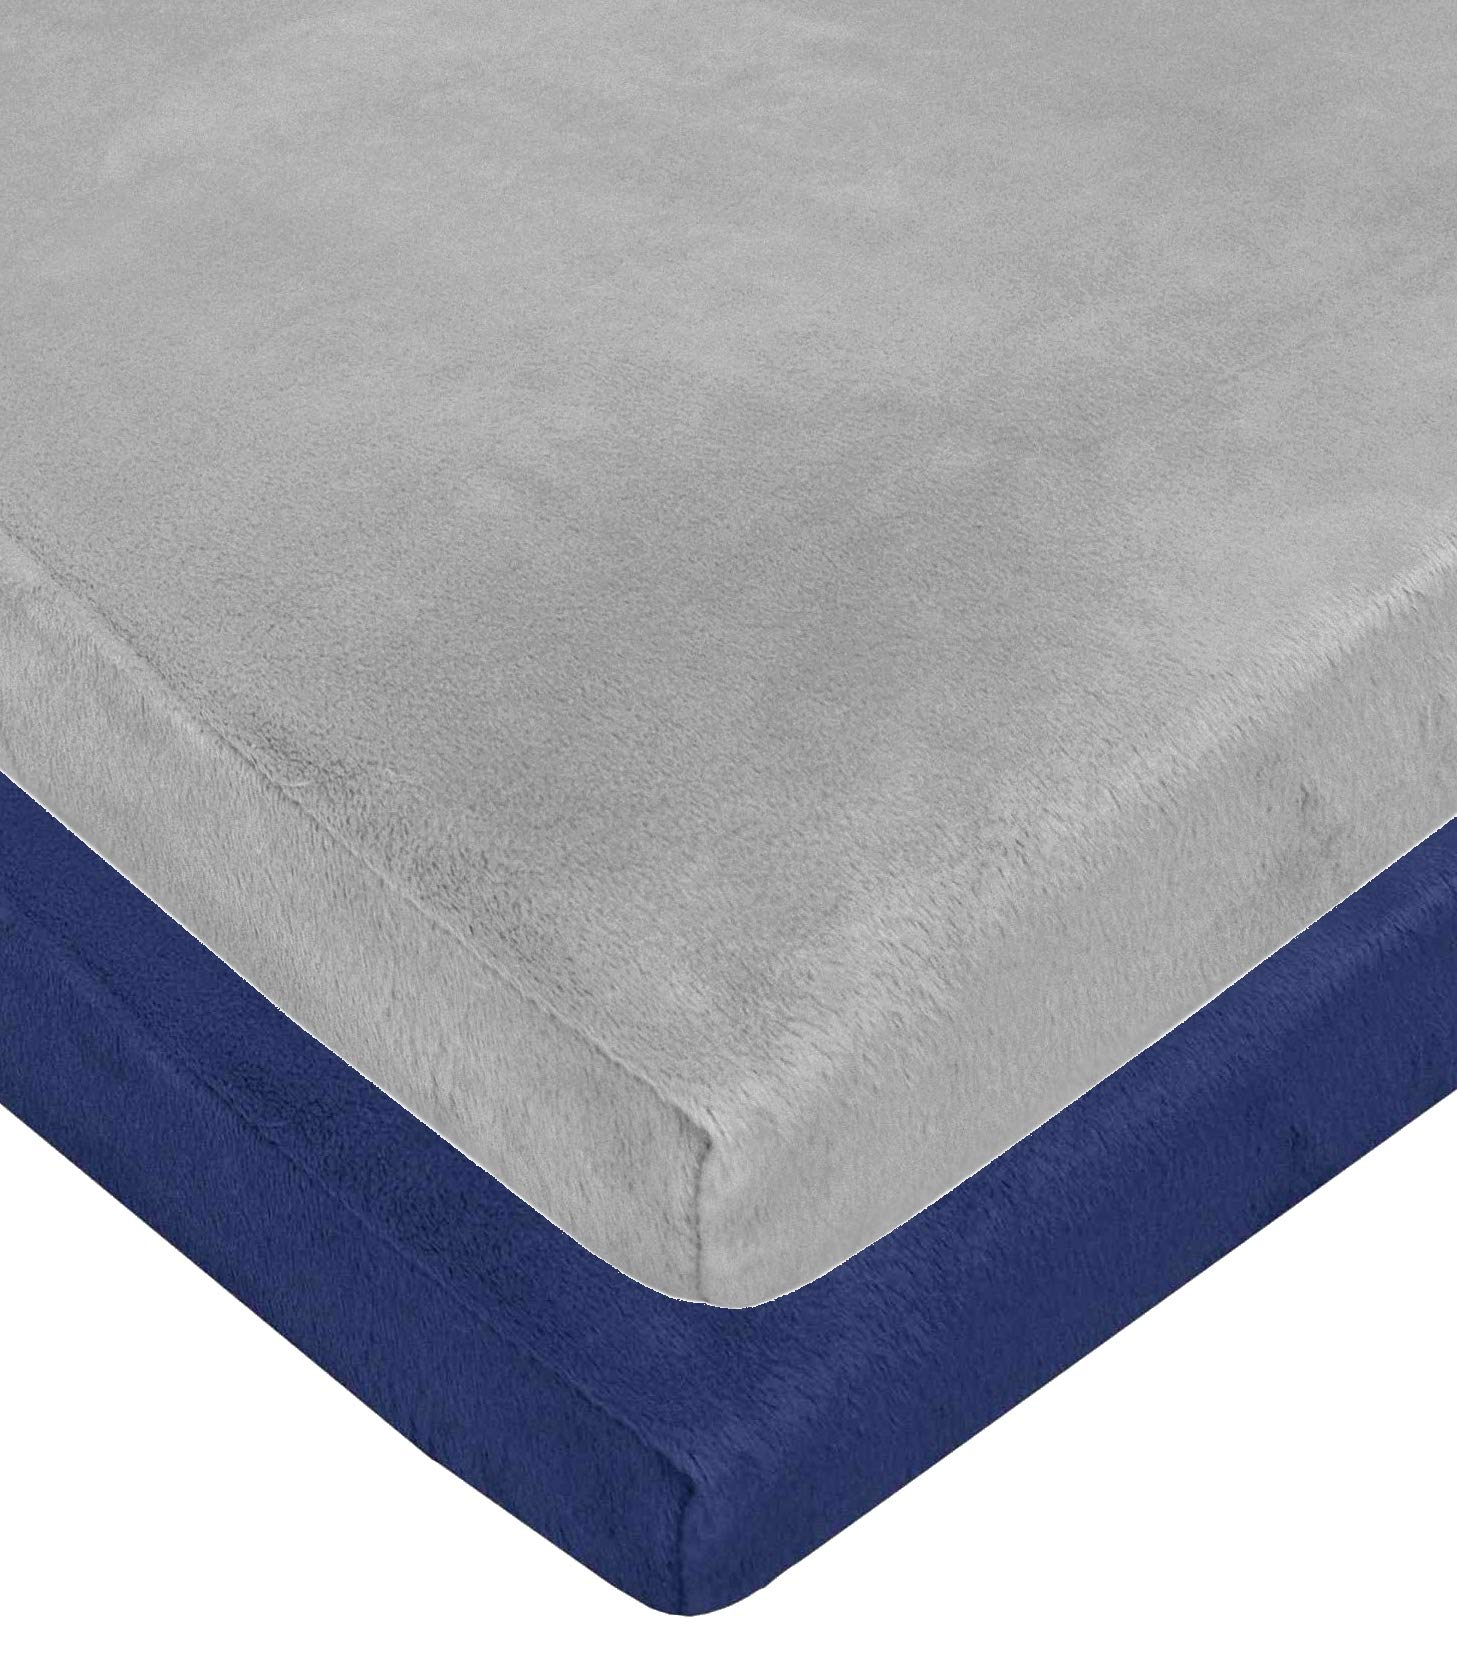 American Baby Company Heavenly Soft Chenille Fitted Pack N Play Playard Sheet, Navy/Gray (2 Pack), 27'' x 39''